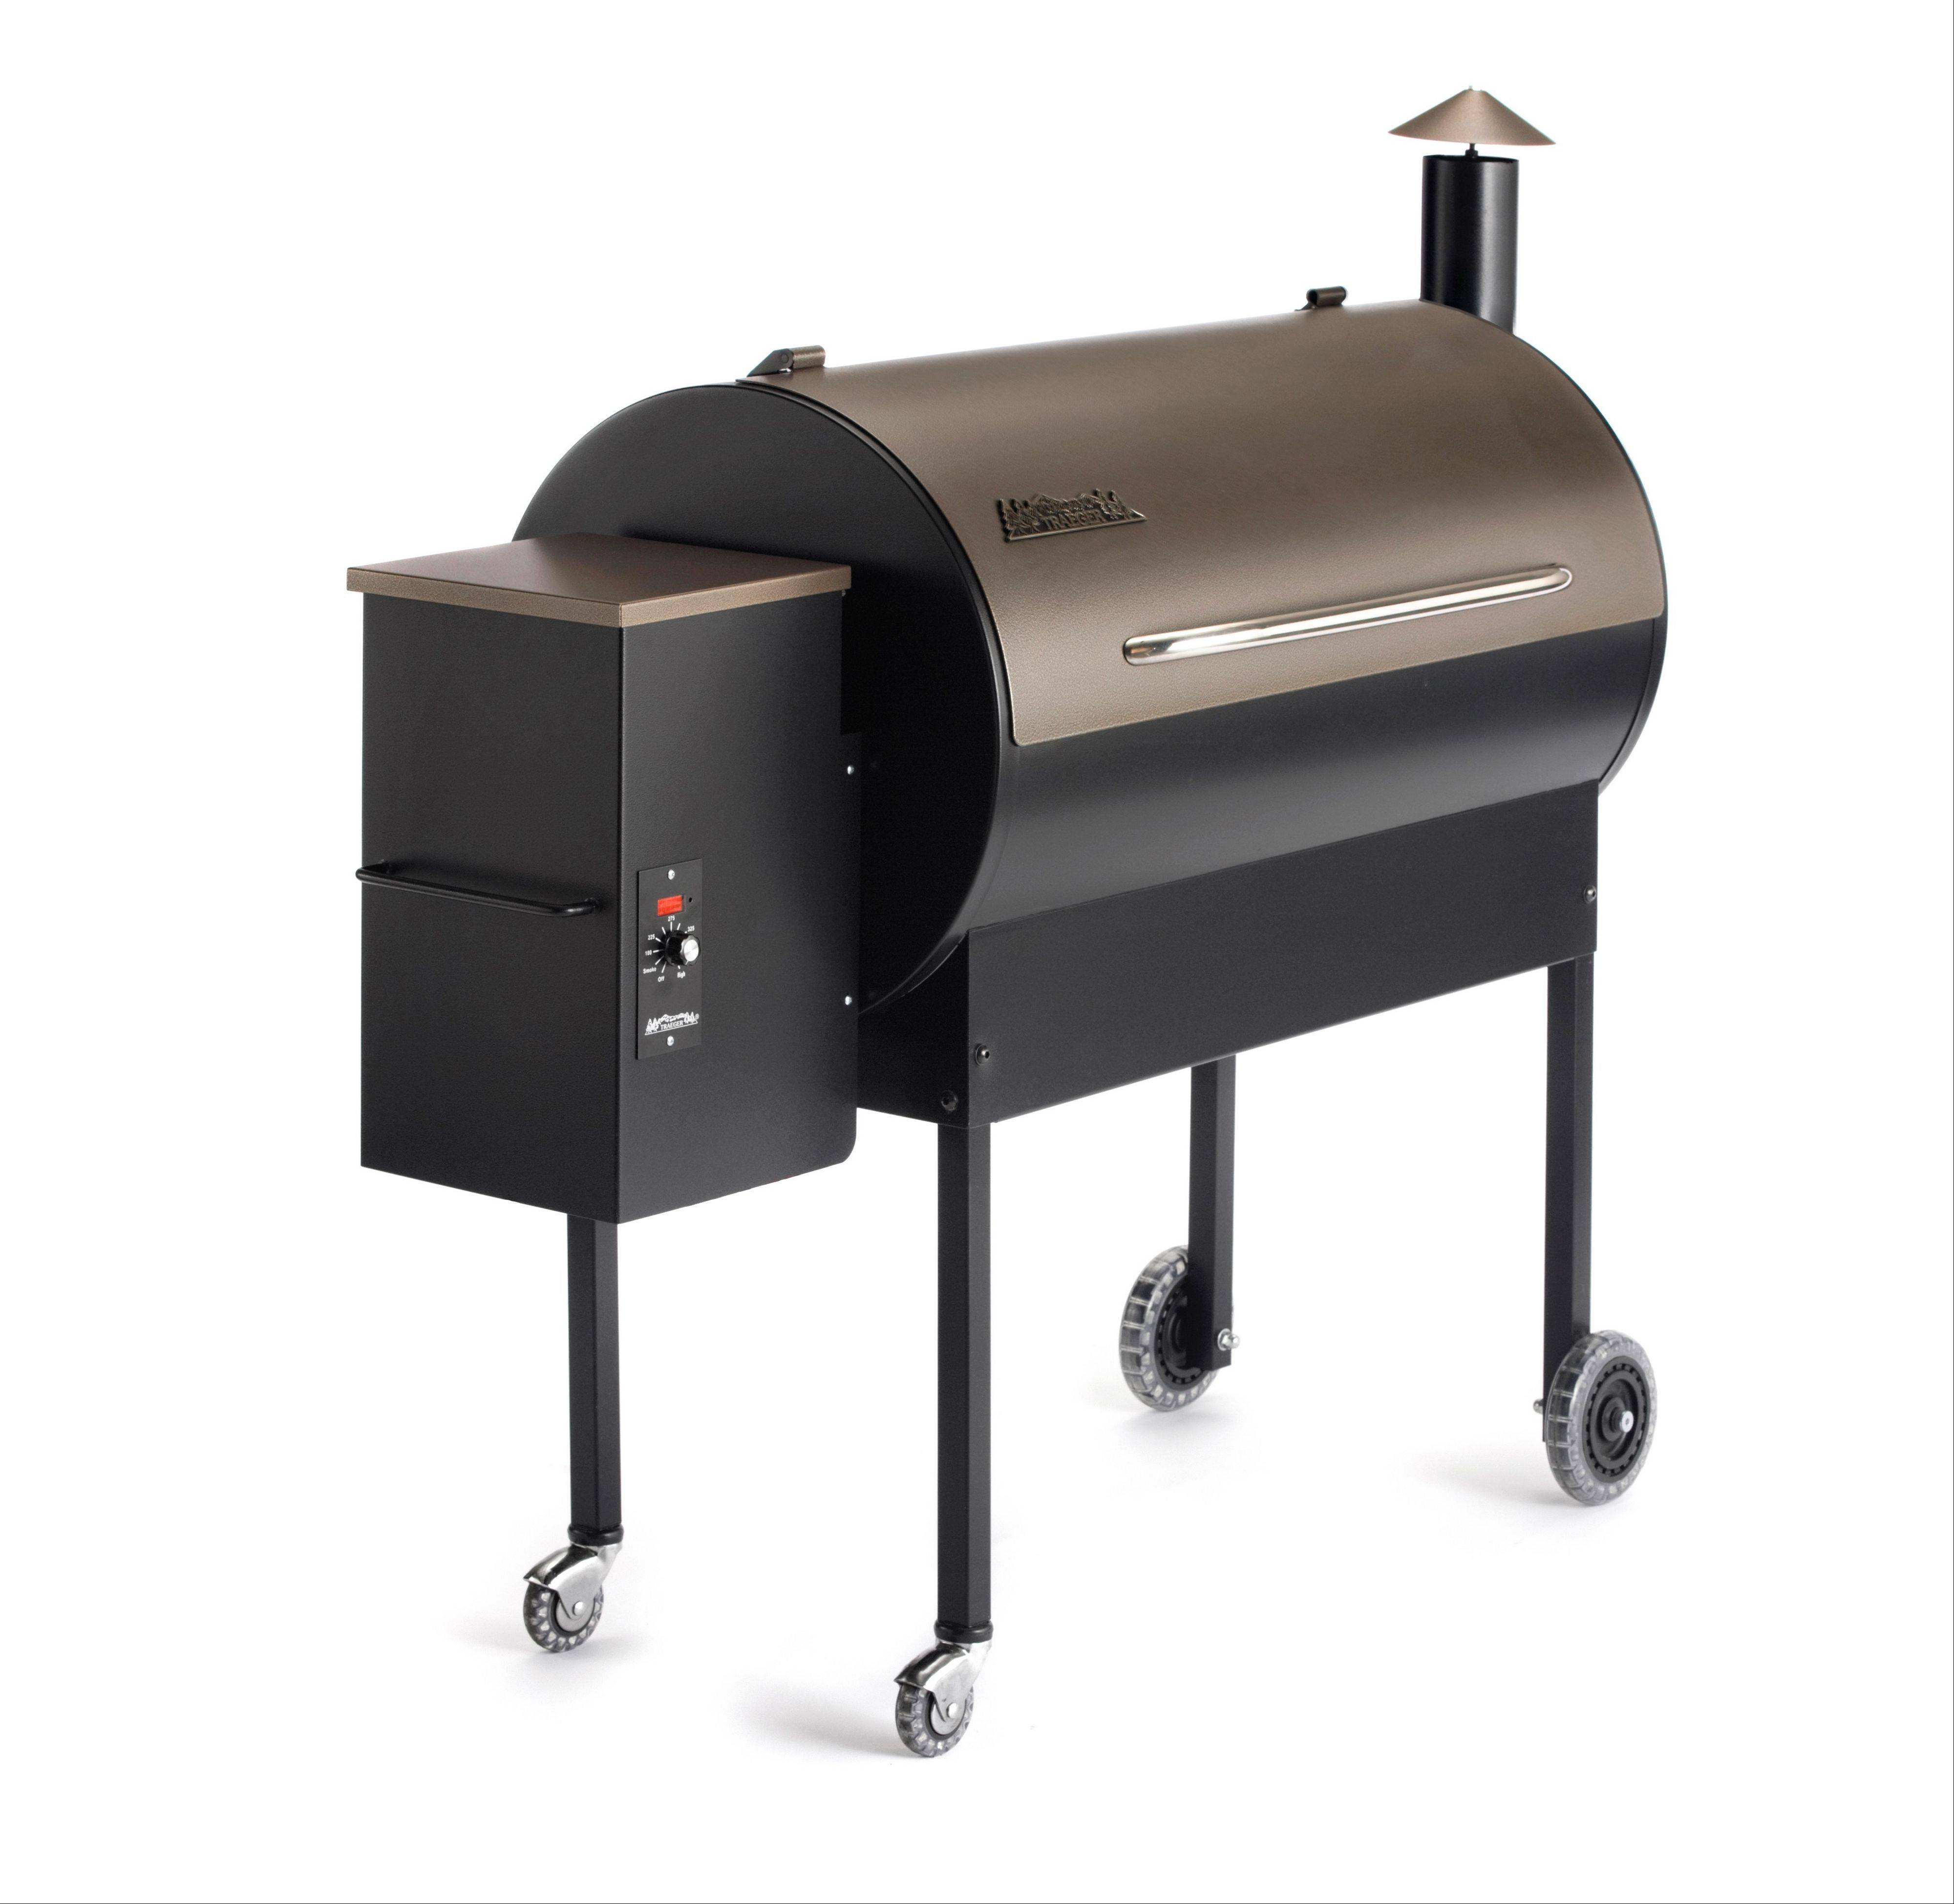 This Traeger grill burns wood pellets for a constant, even temperature.